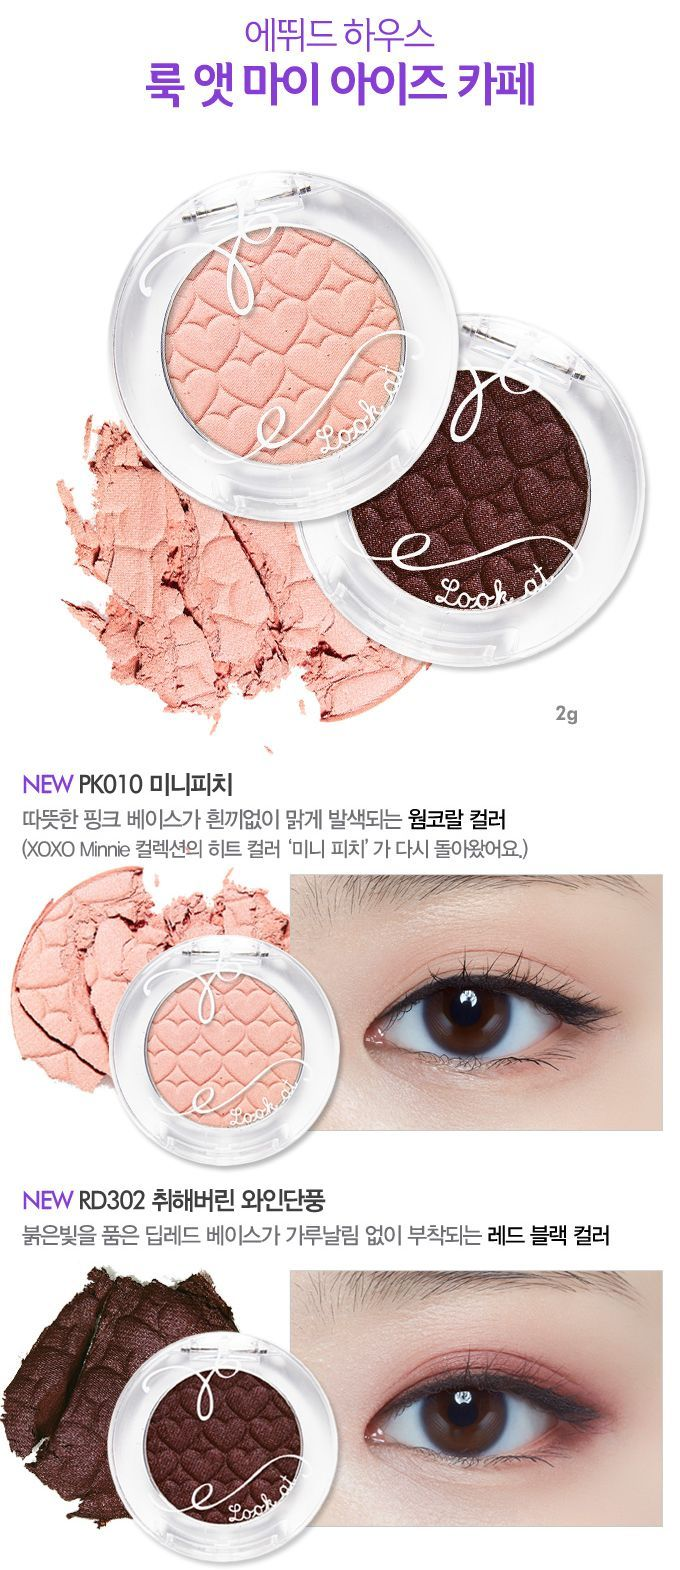 Etude house look at my eyes cafe eyeshadow eyeshadow pinterest etude house look at my eyes cafe eyeshadow baditri Image collections